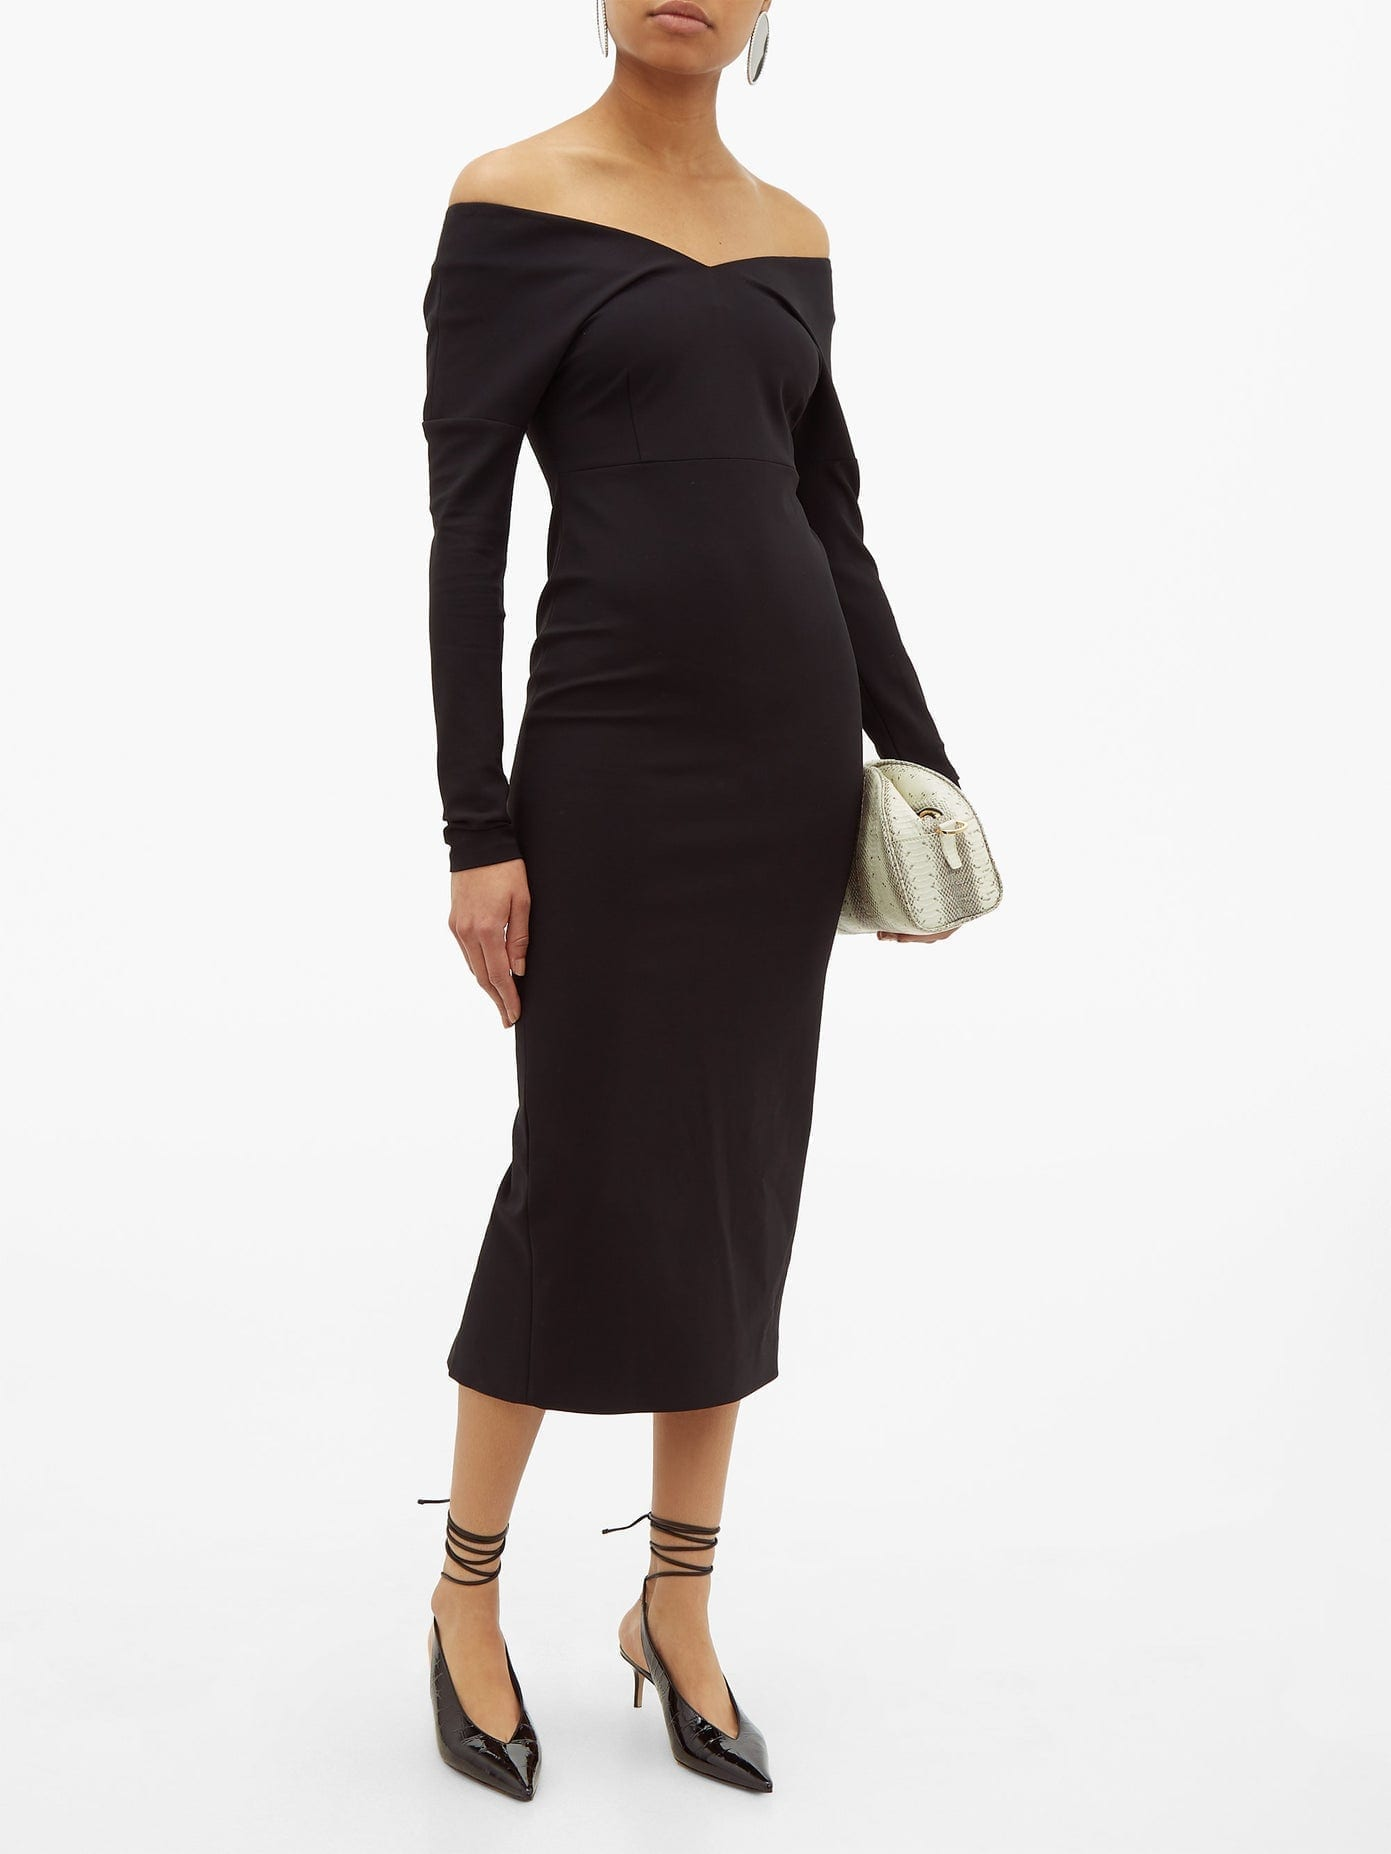 A.W.A.K.E. MODE Non Monroe Off-the-shoulder Cady Dress